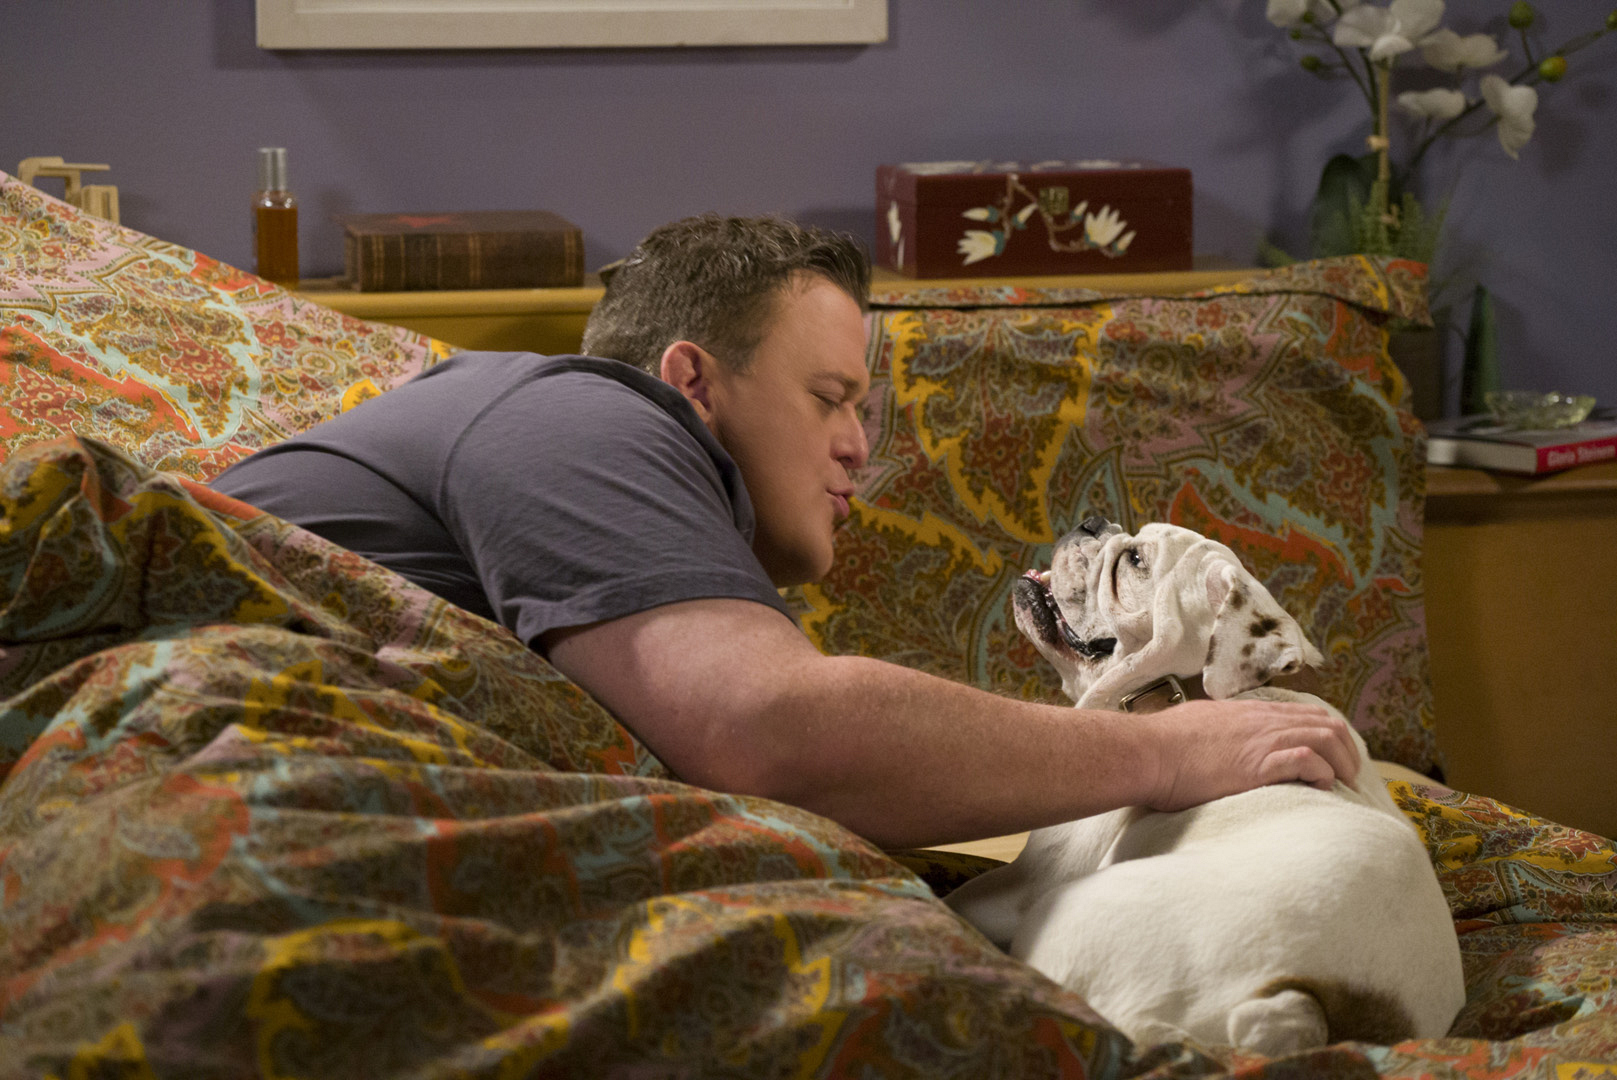 Mike can't get enough of having a sweet pup around.